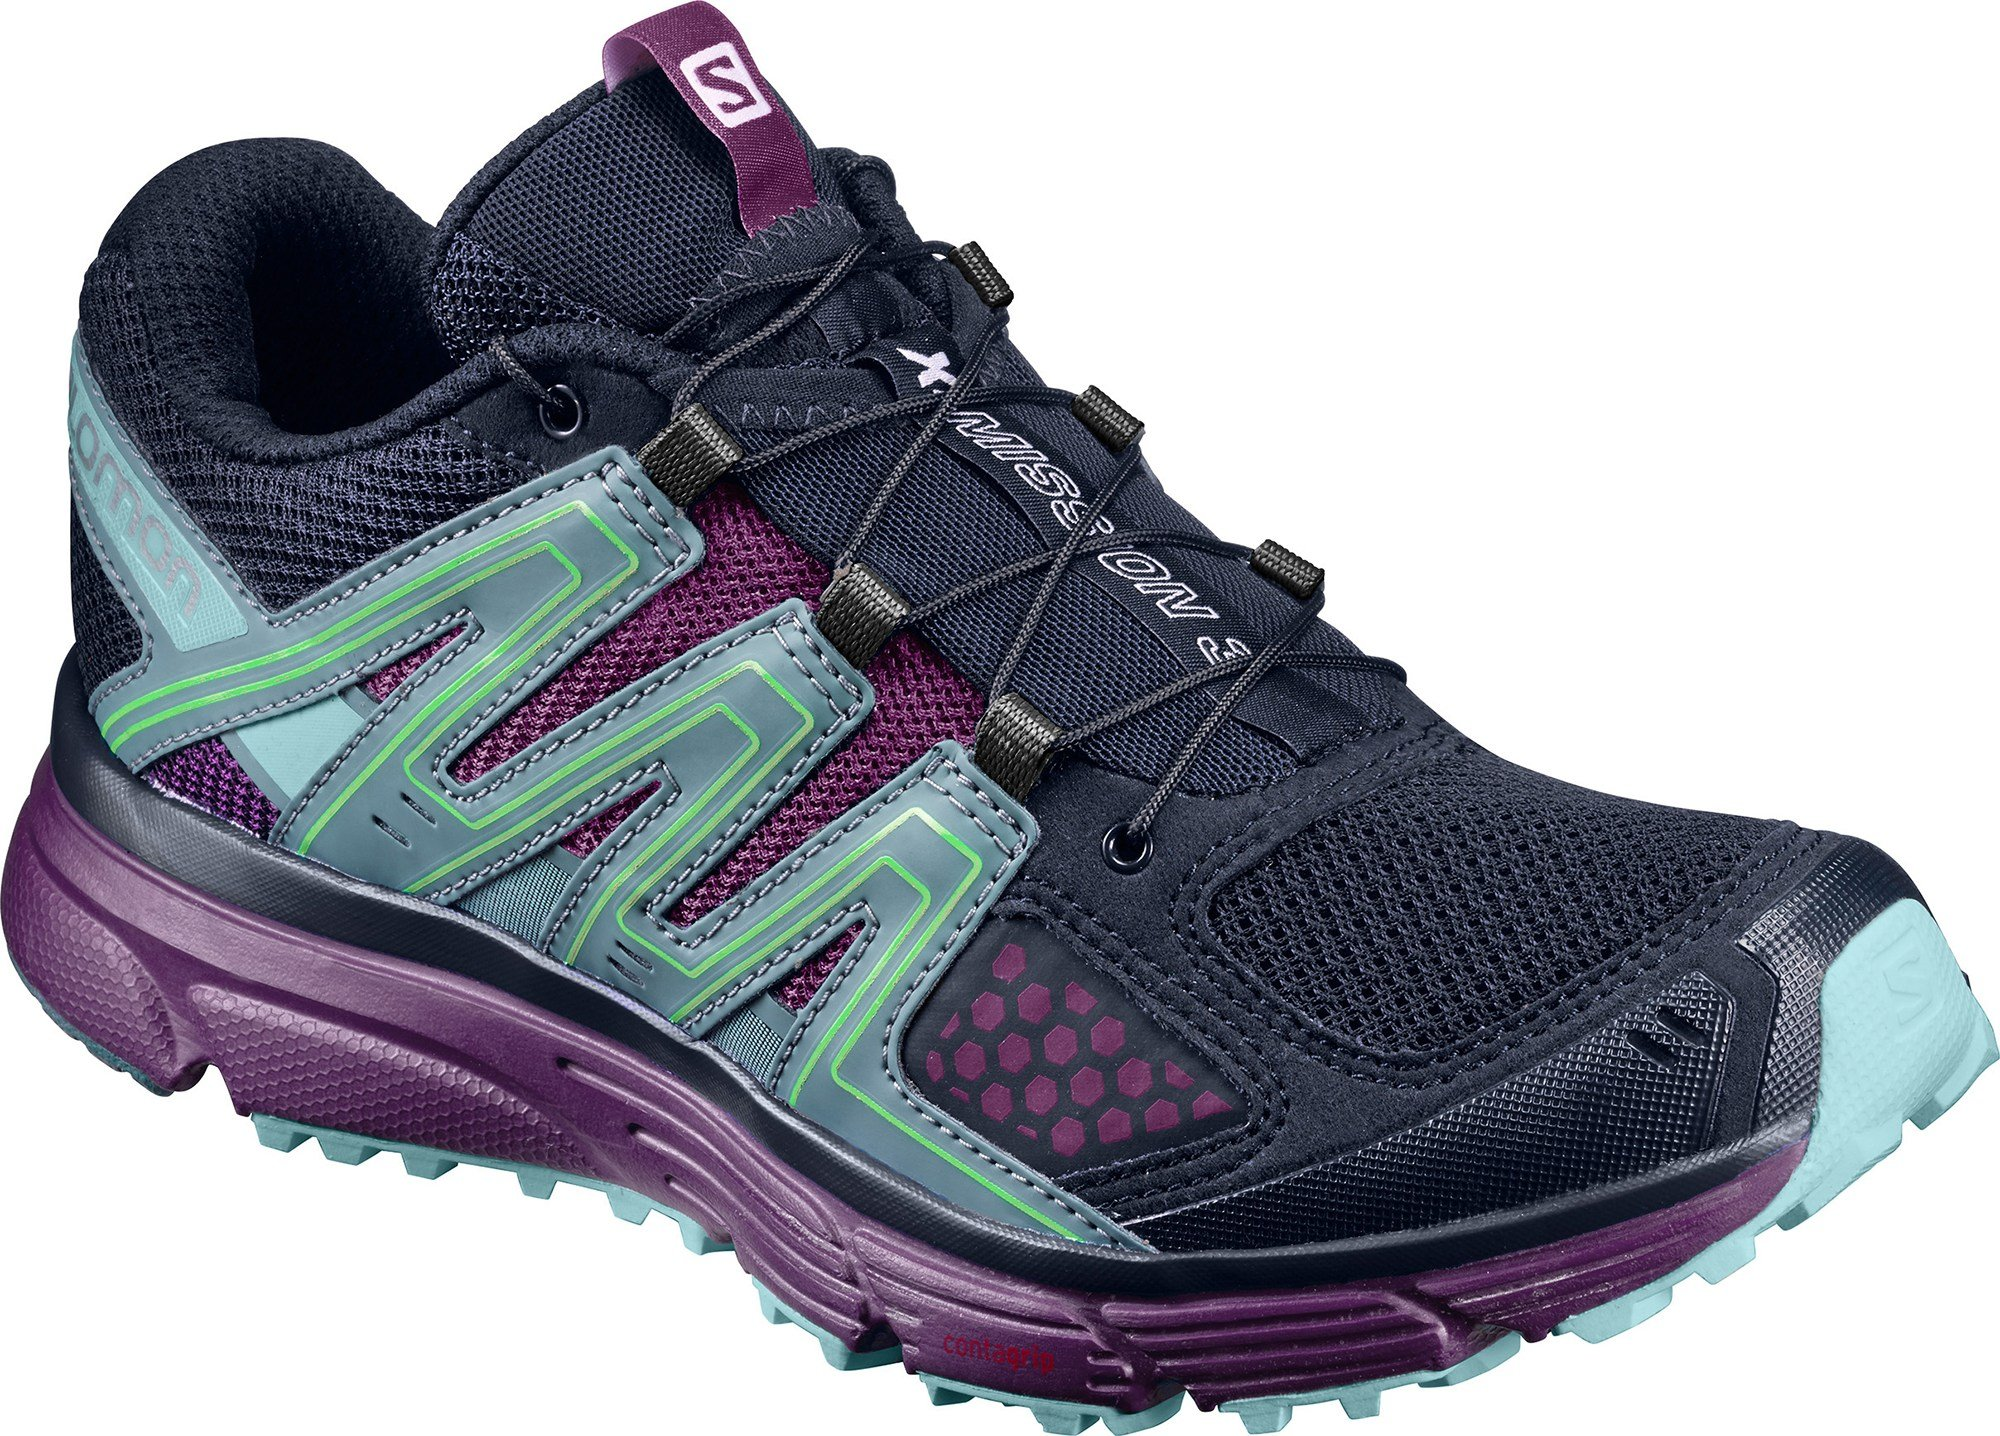 Salomon Women's X-Mission 3 Trail Running Shoe,Navy Blazer/Grape Juice/North Atl